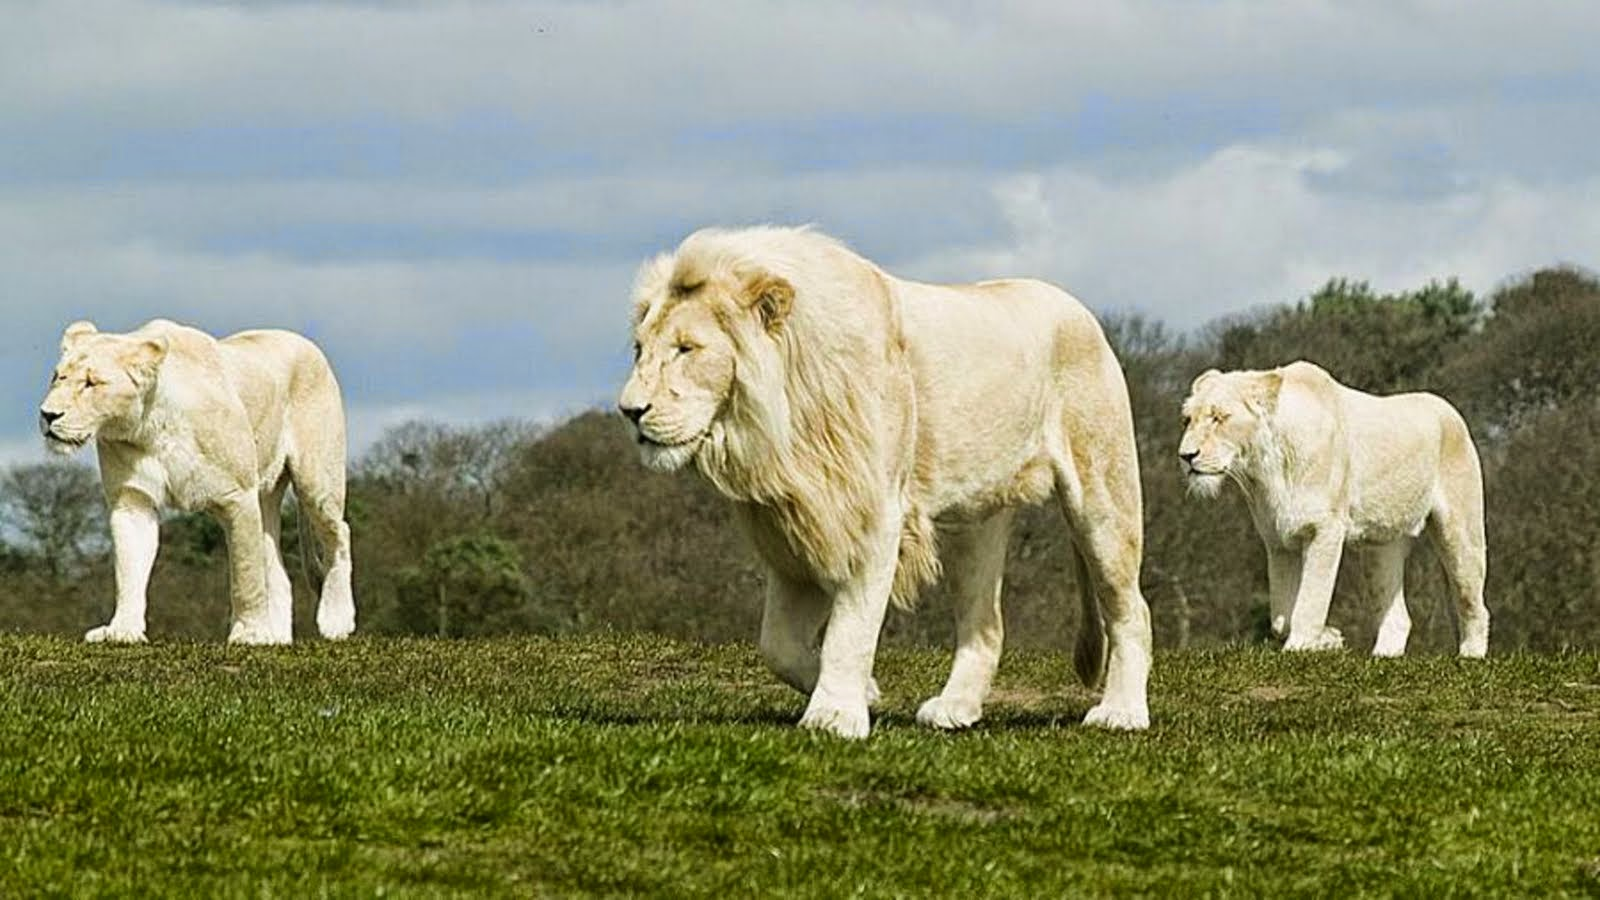 White Lion Hd Wallpaper Free Download